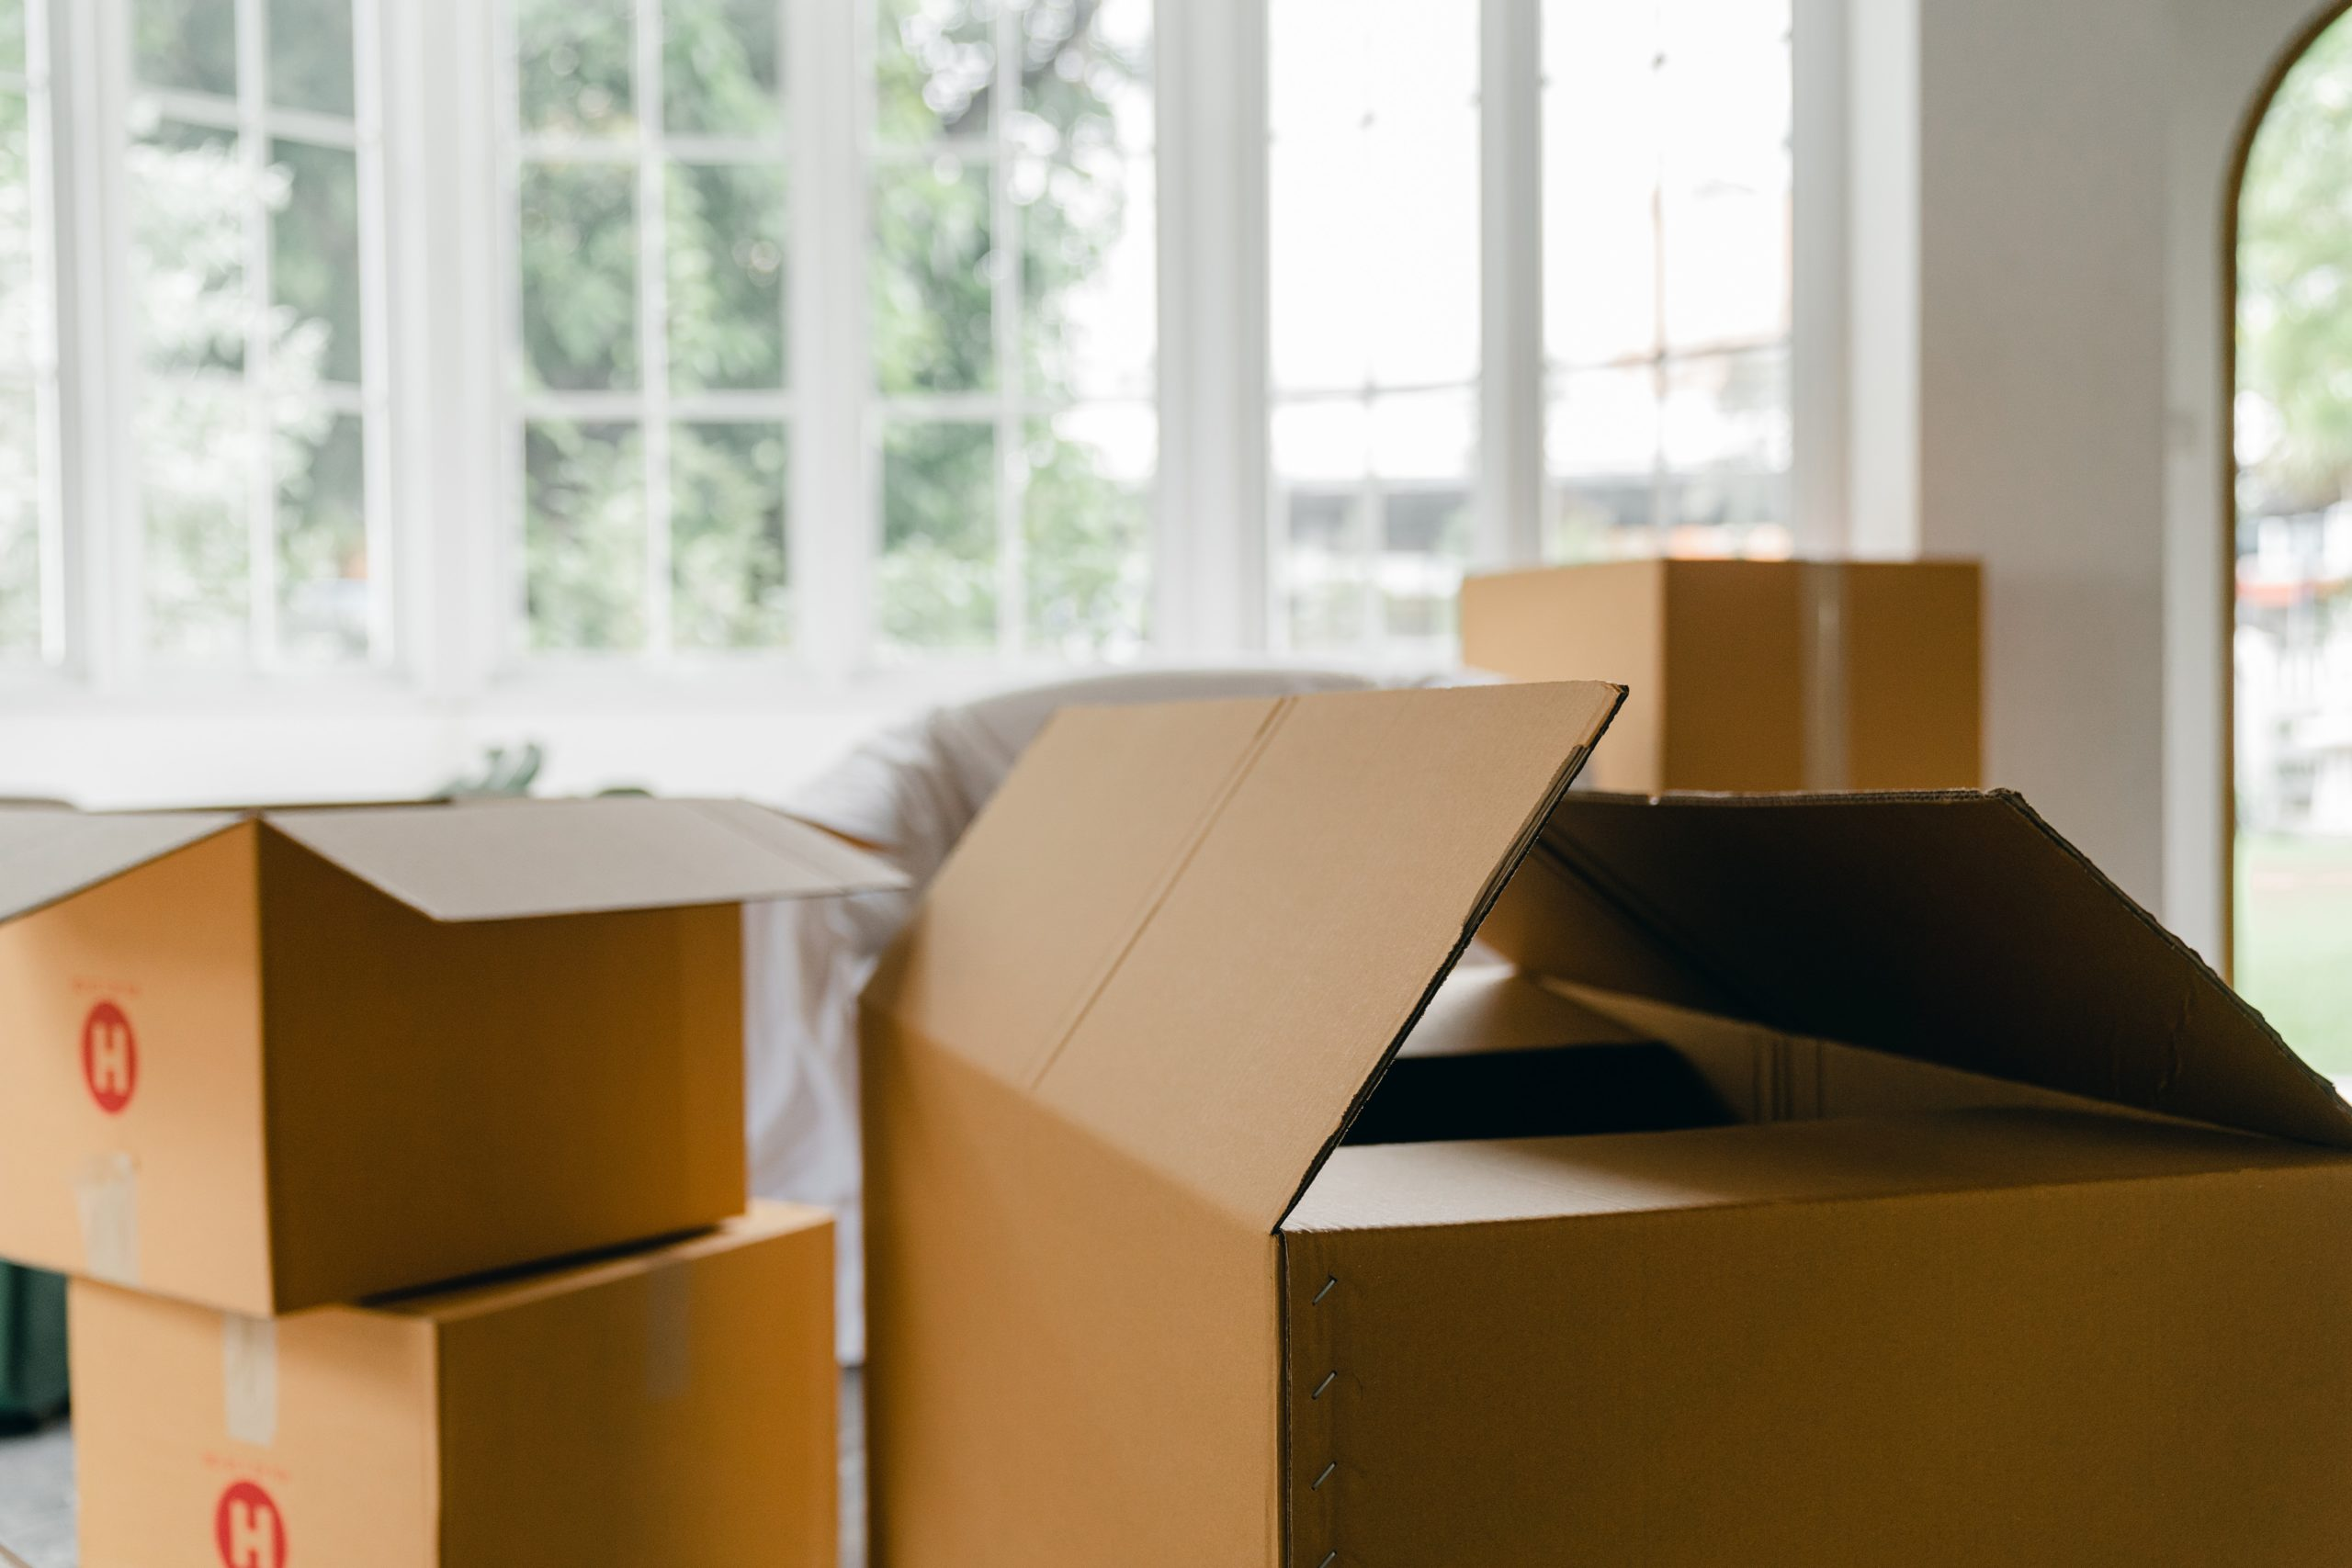 Benefits of Choosing Warehouse Storage When Moving House